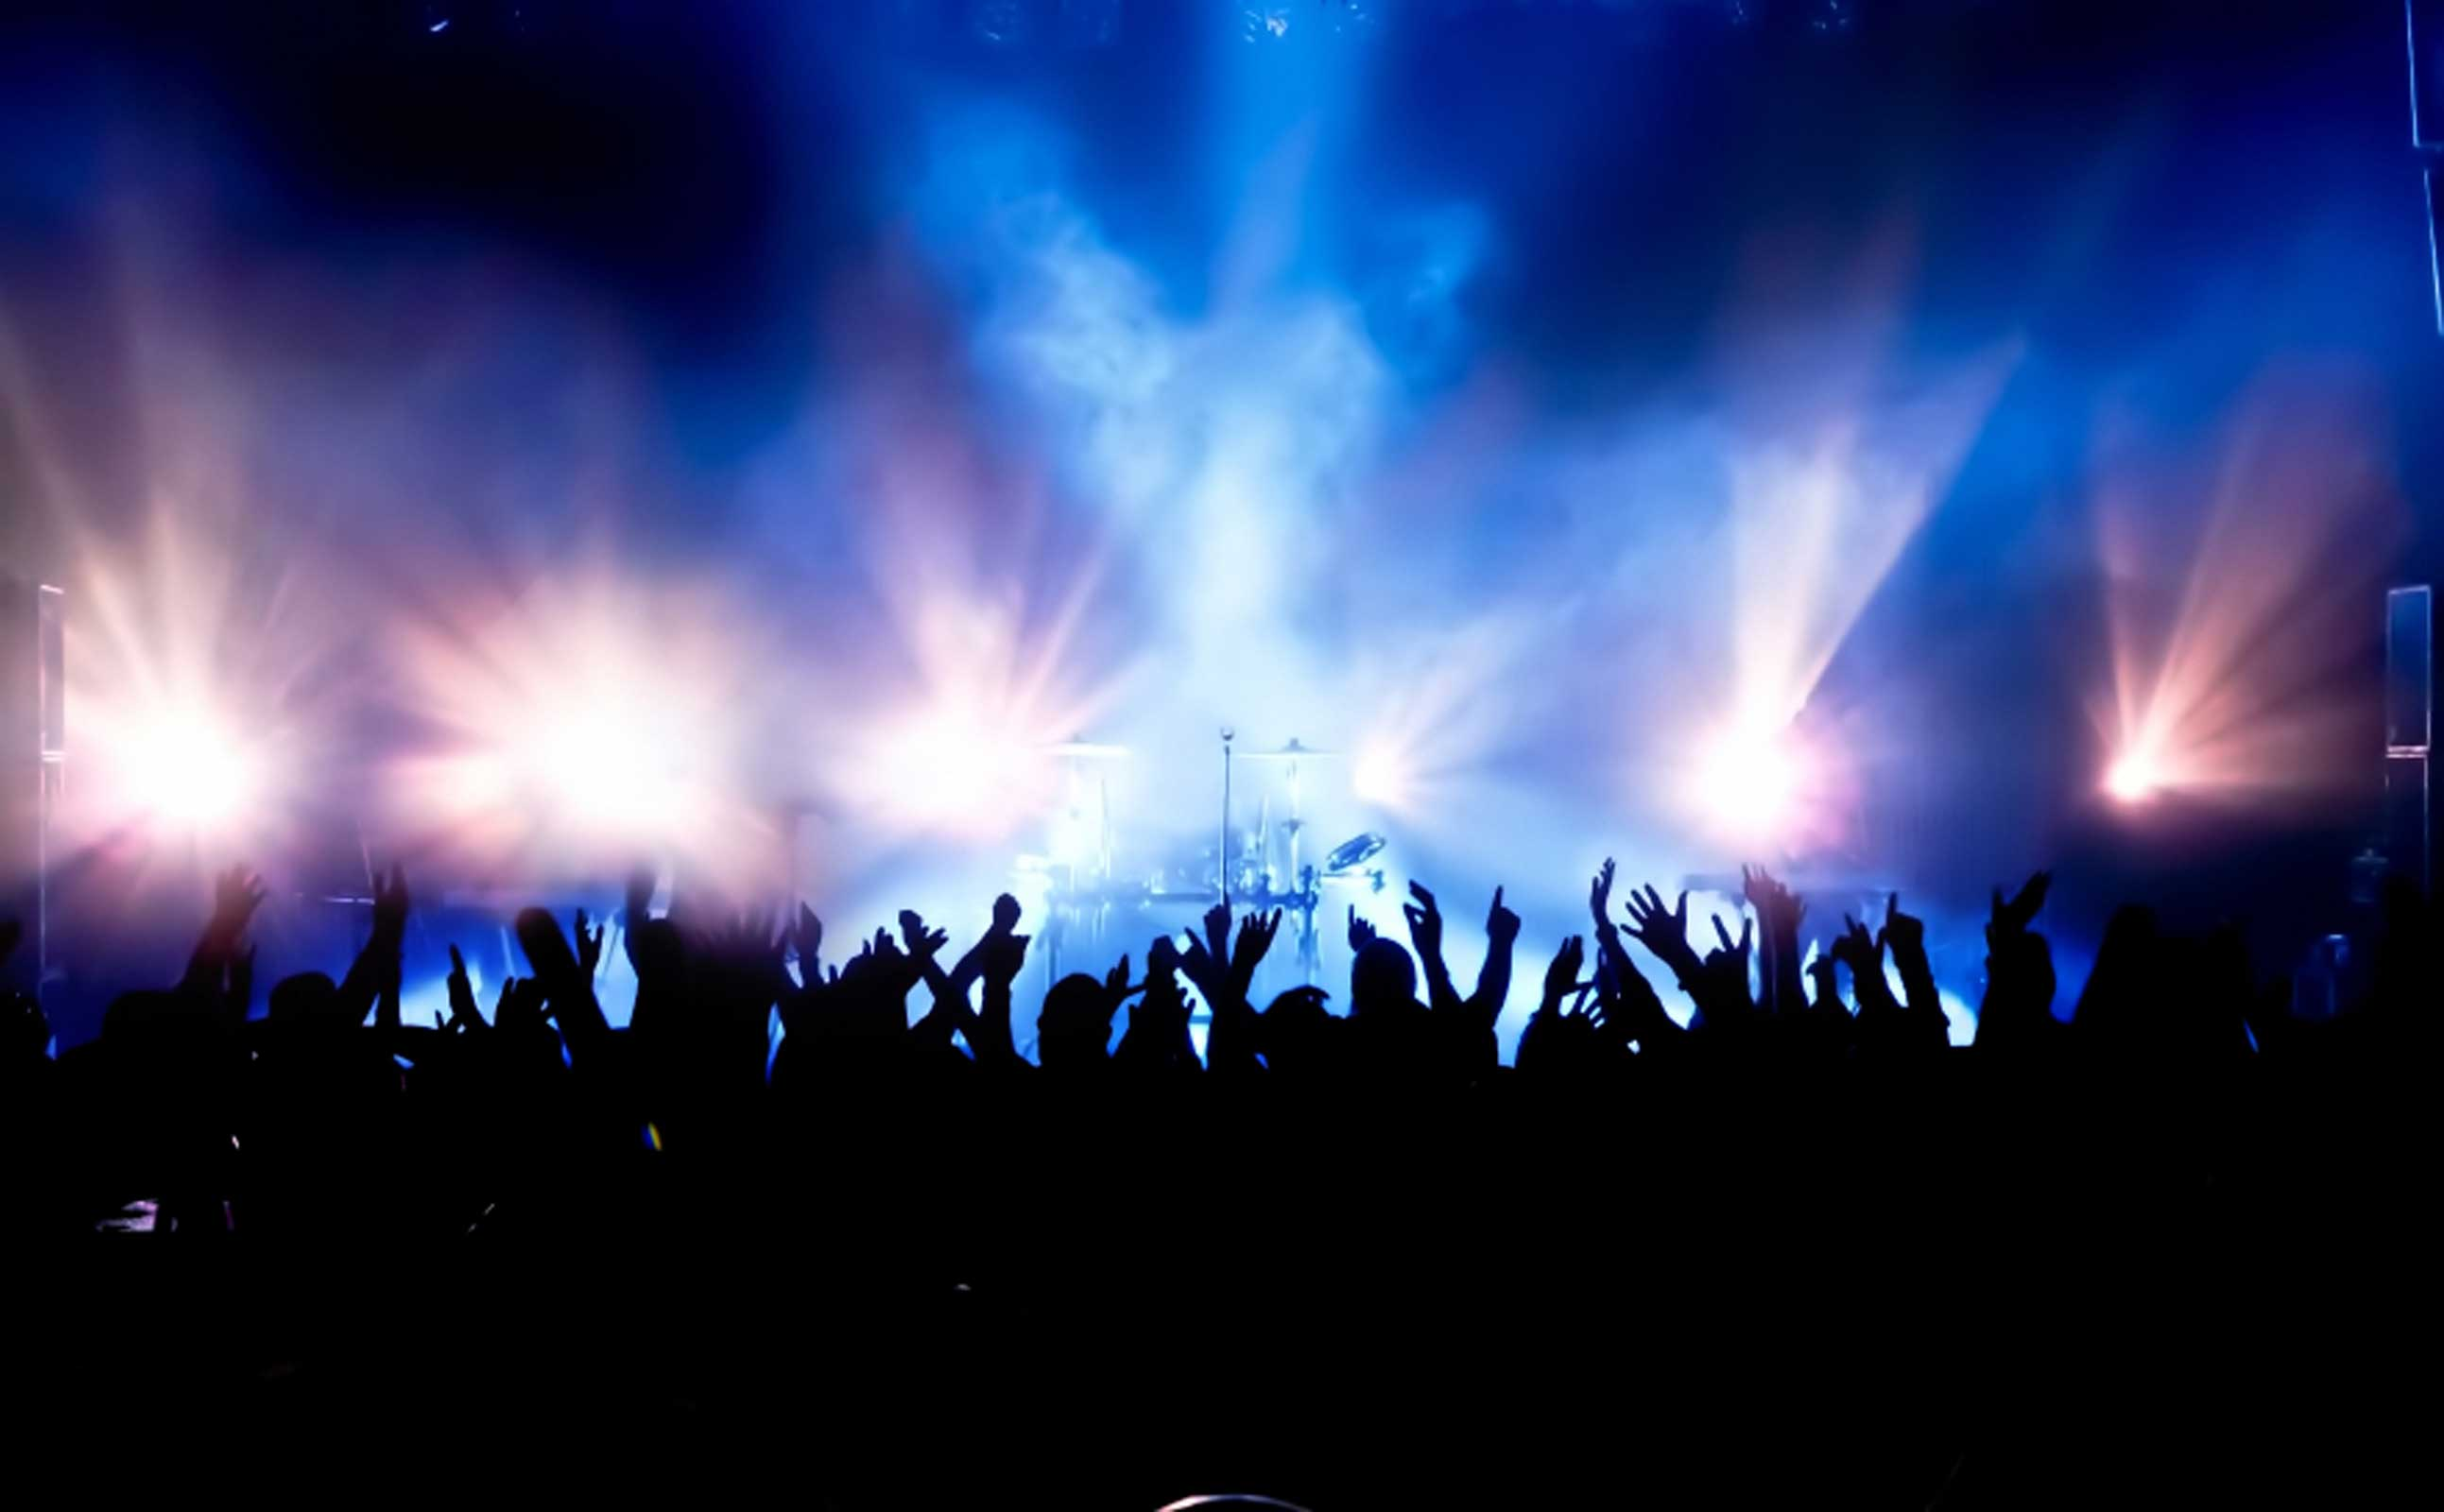 Stage lights background related keywords amp suggestions stage lights - Concert Crowd From Stage Background Images Pictures Becuo